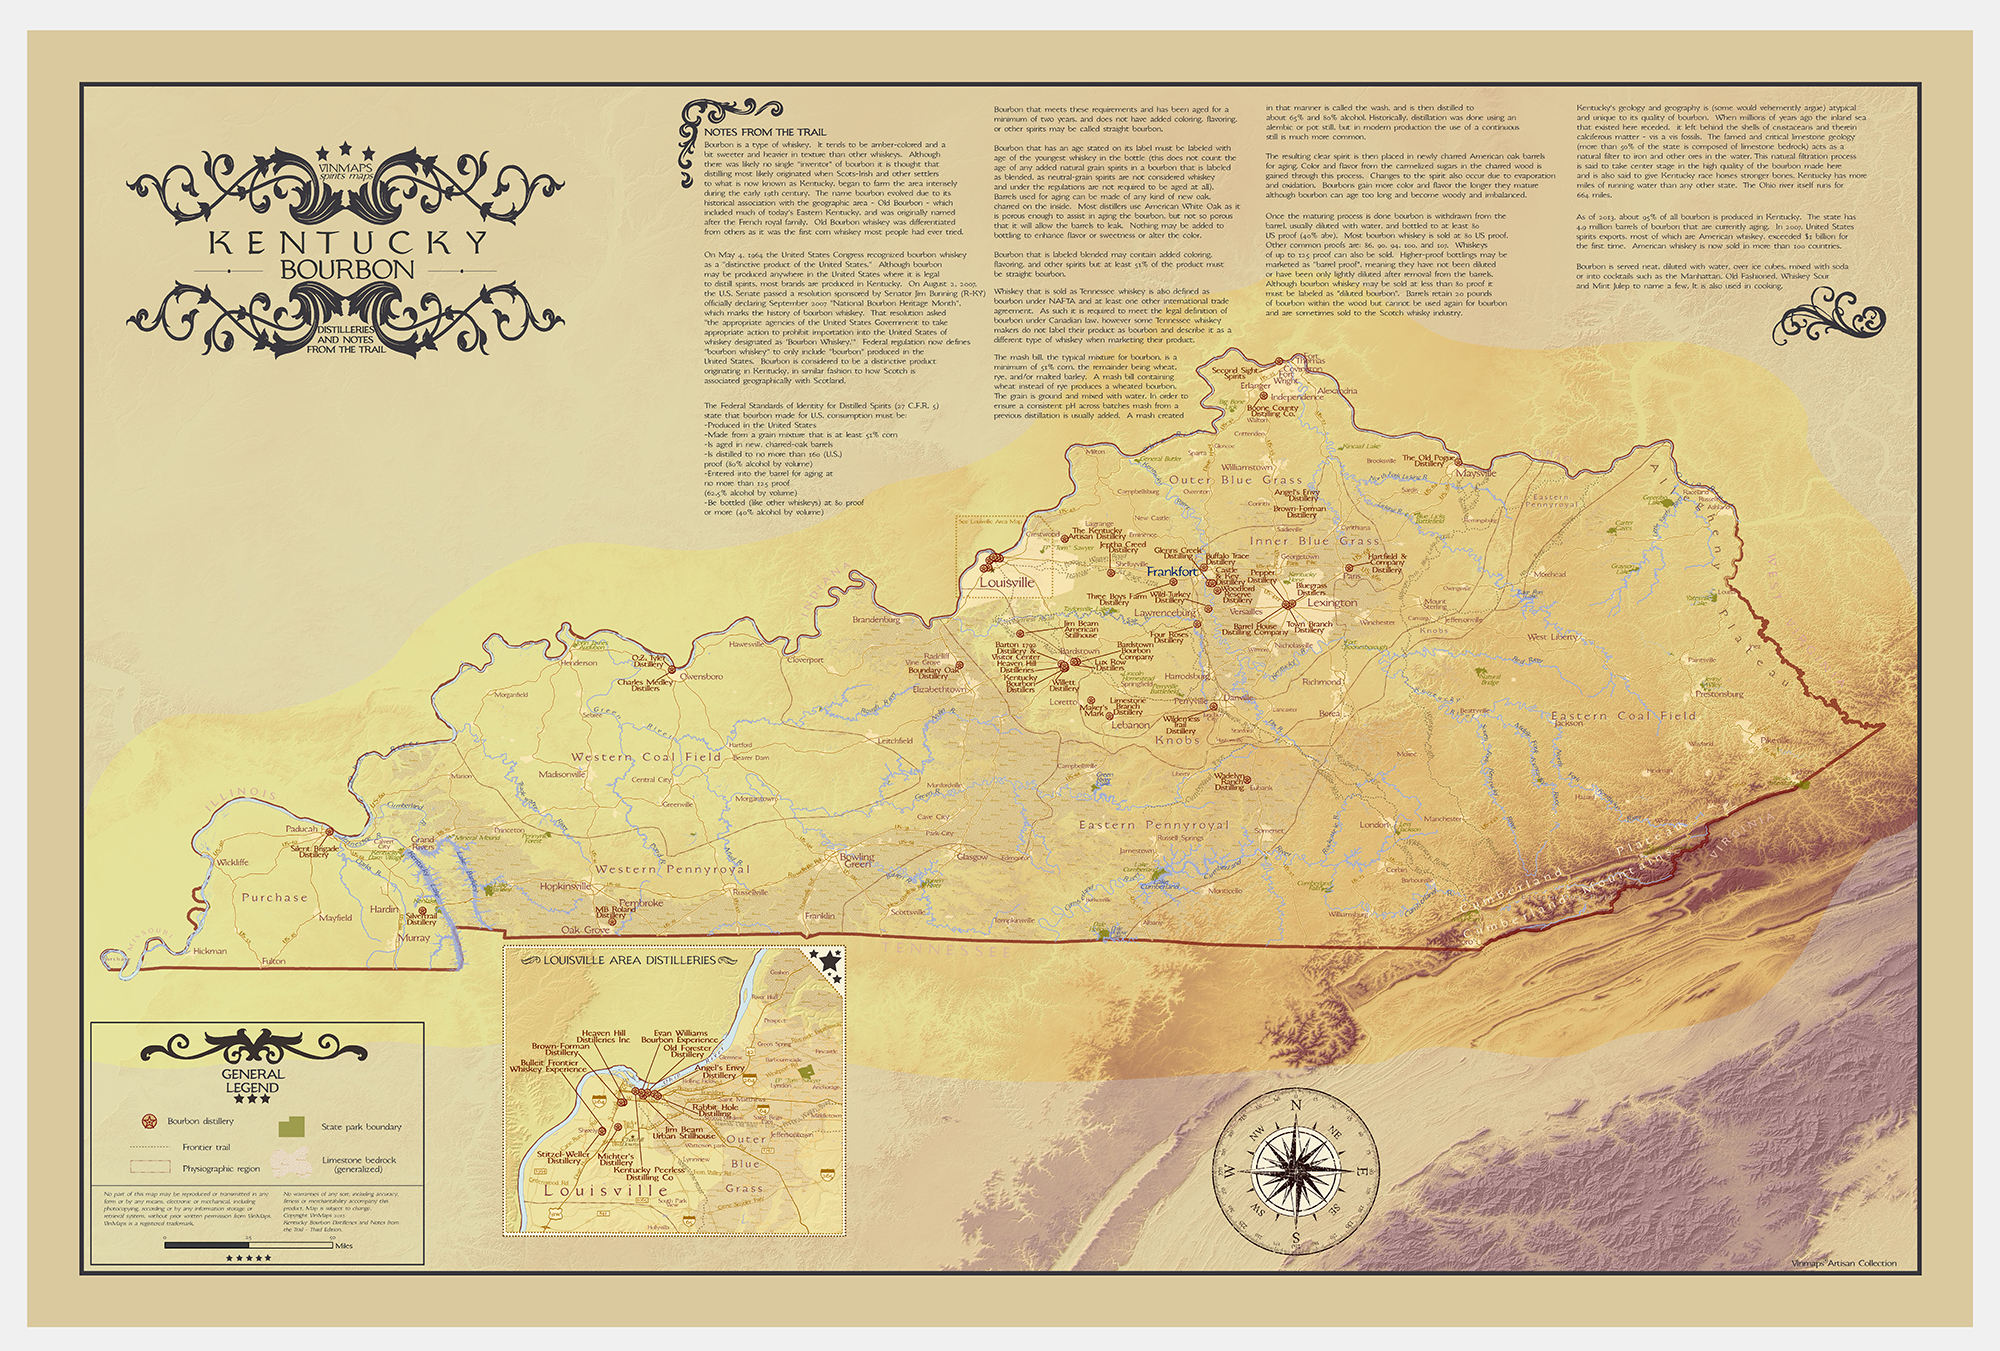 kentucky bourbon trail map with Kentucky Bourbon Distilleries And Notes From The Trail on Appalachen Blue Ridge Parkway Bourbon Trail Motorradtour Usa in addition Lexington Map Print Modern Map Art further Maps further Map Of Virgin Islands And Puerto Rico Download Map Puerto Rico And Virgin Islands further Prweb12592650.